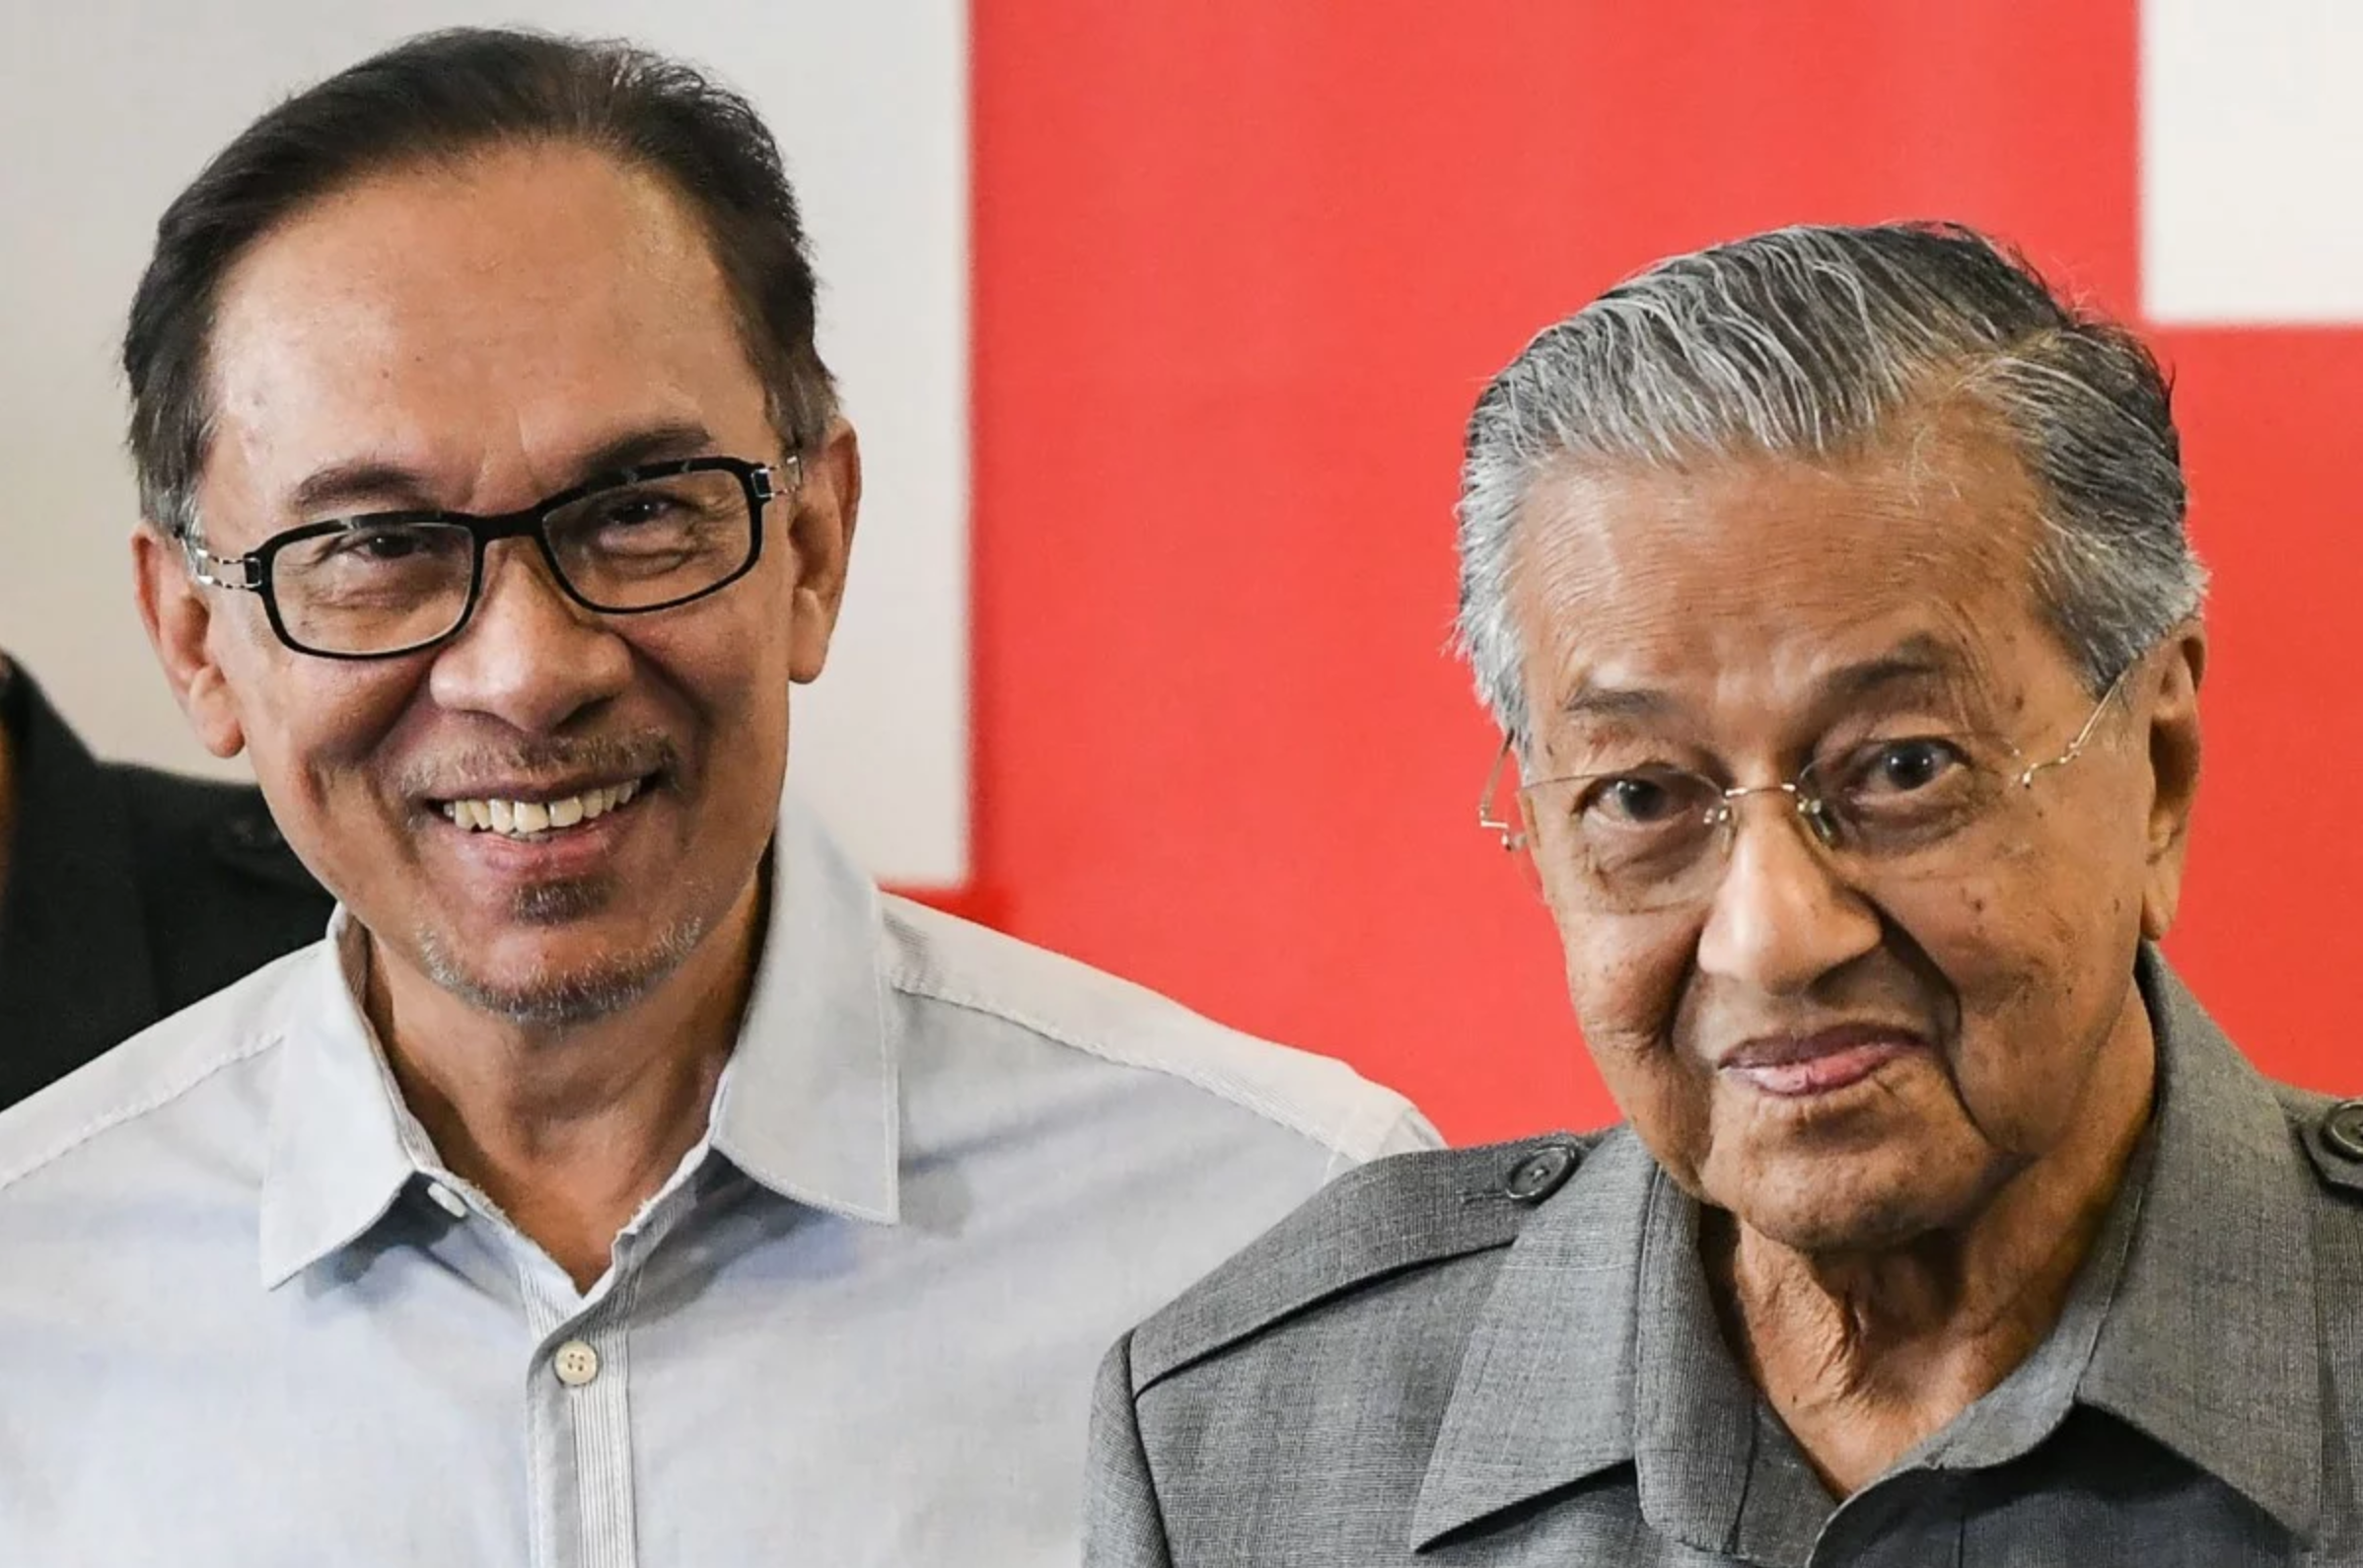 In this file photo taken on June 1, 2018, Malaysia's Prime Minister Mahathir Mohamad (R) and politician Anwar Ibrahim leave after a press conference in Kuala Lumpur.